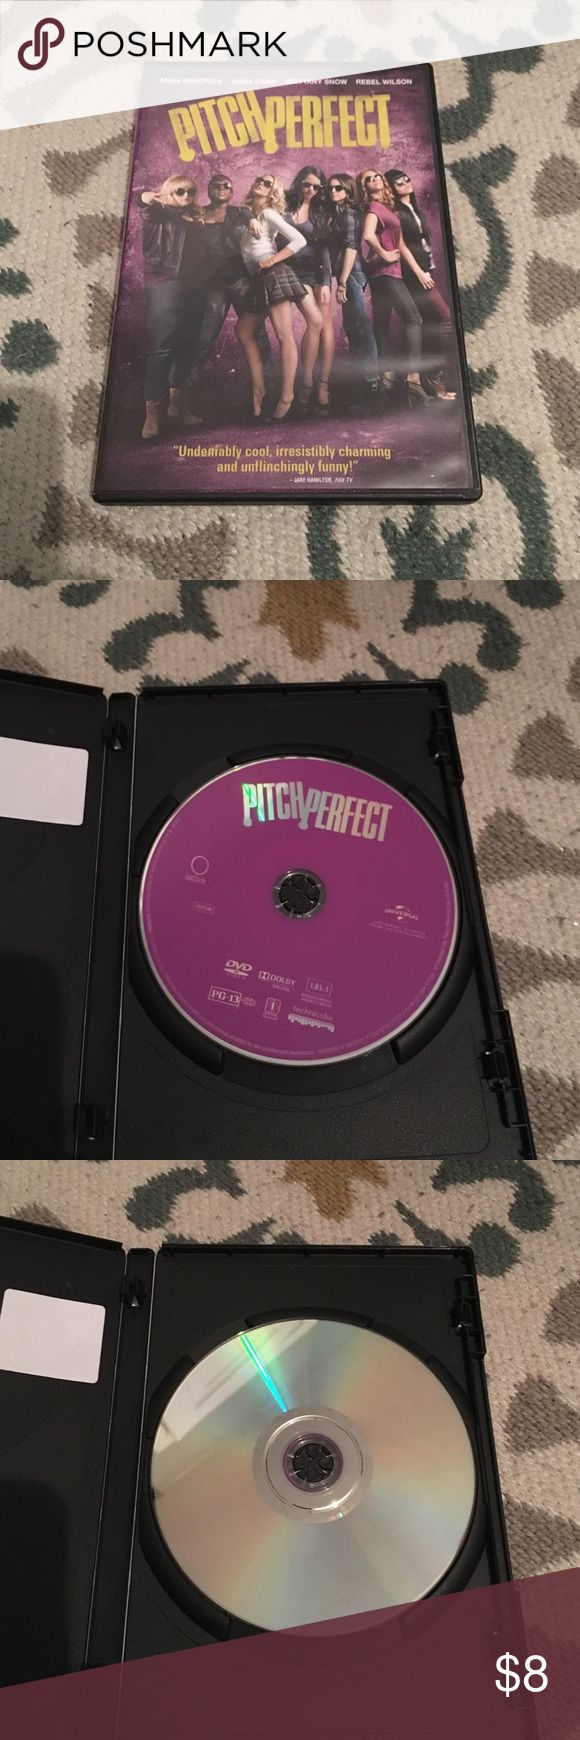 DVD Pitch Perfect. No scratches. Other